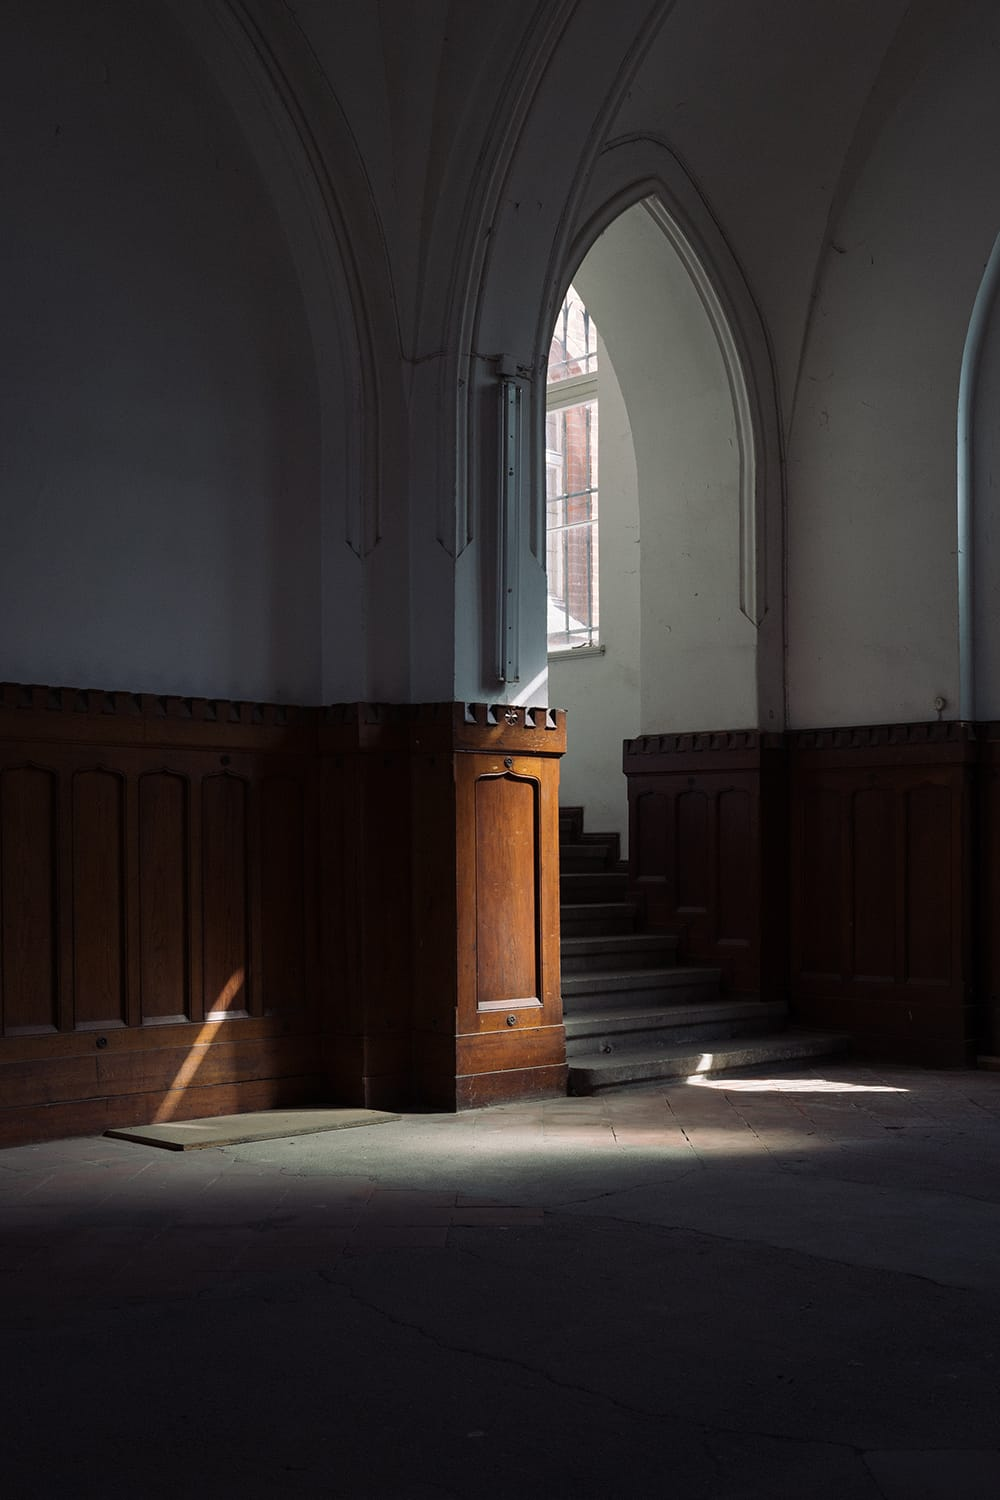 Dark, dramatic entrance to a chamber with a few rays of lights. Frankfurt Oder